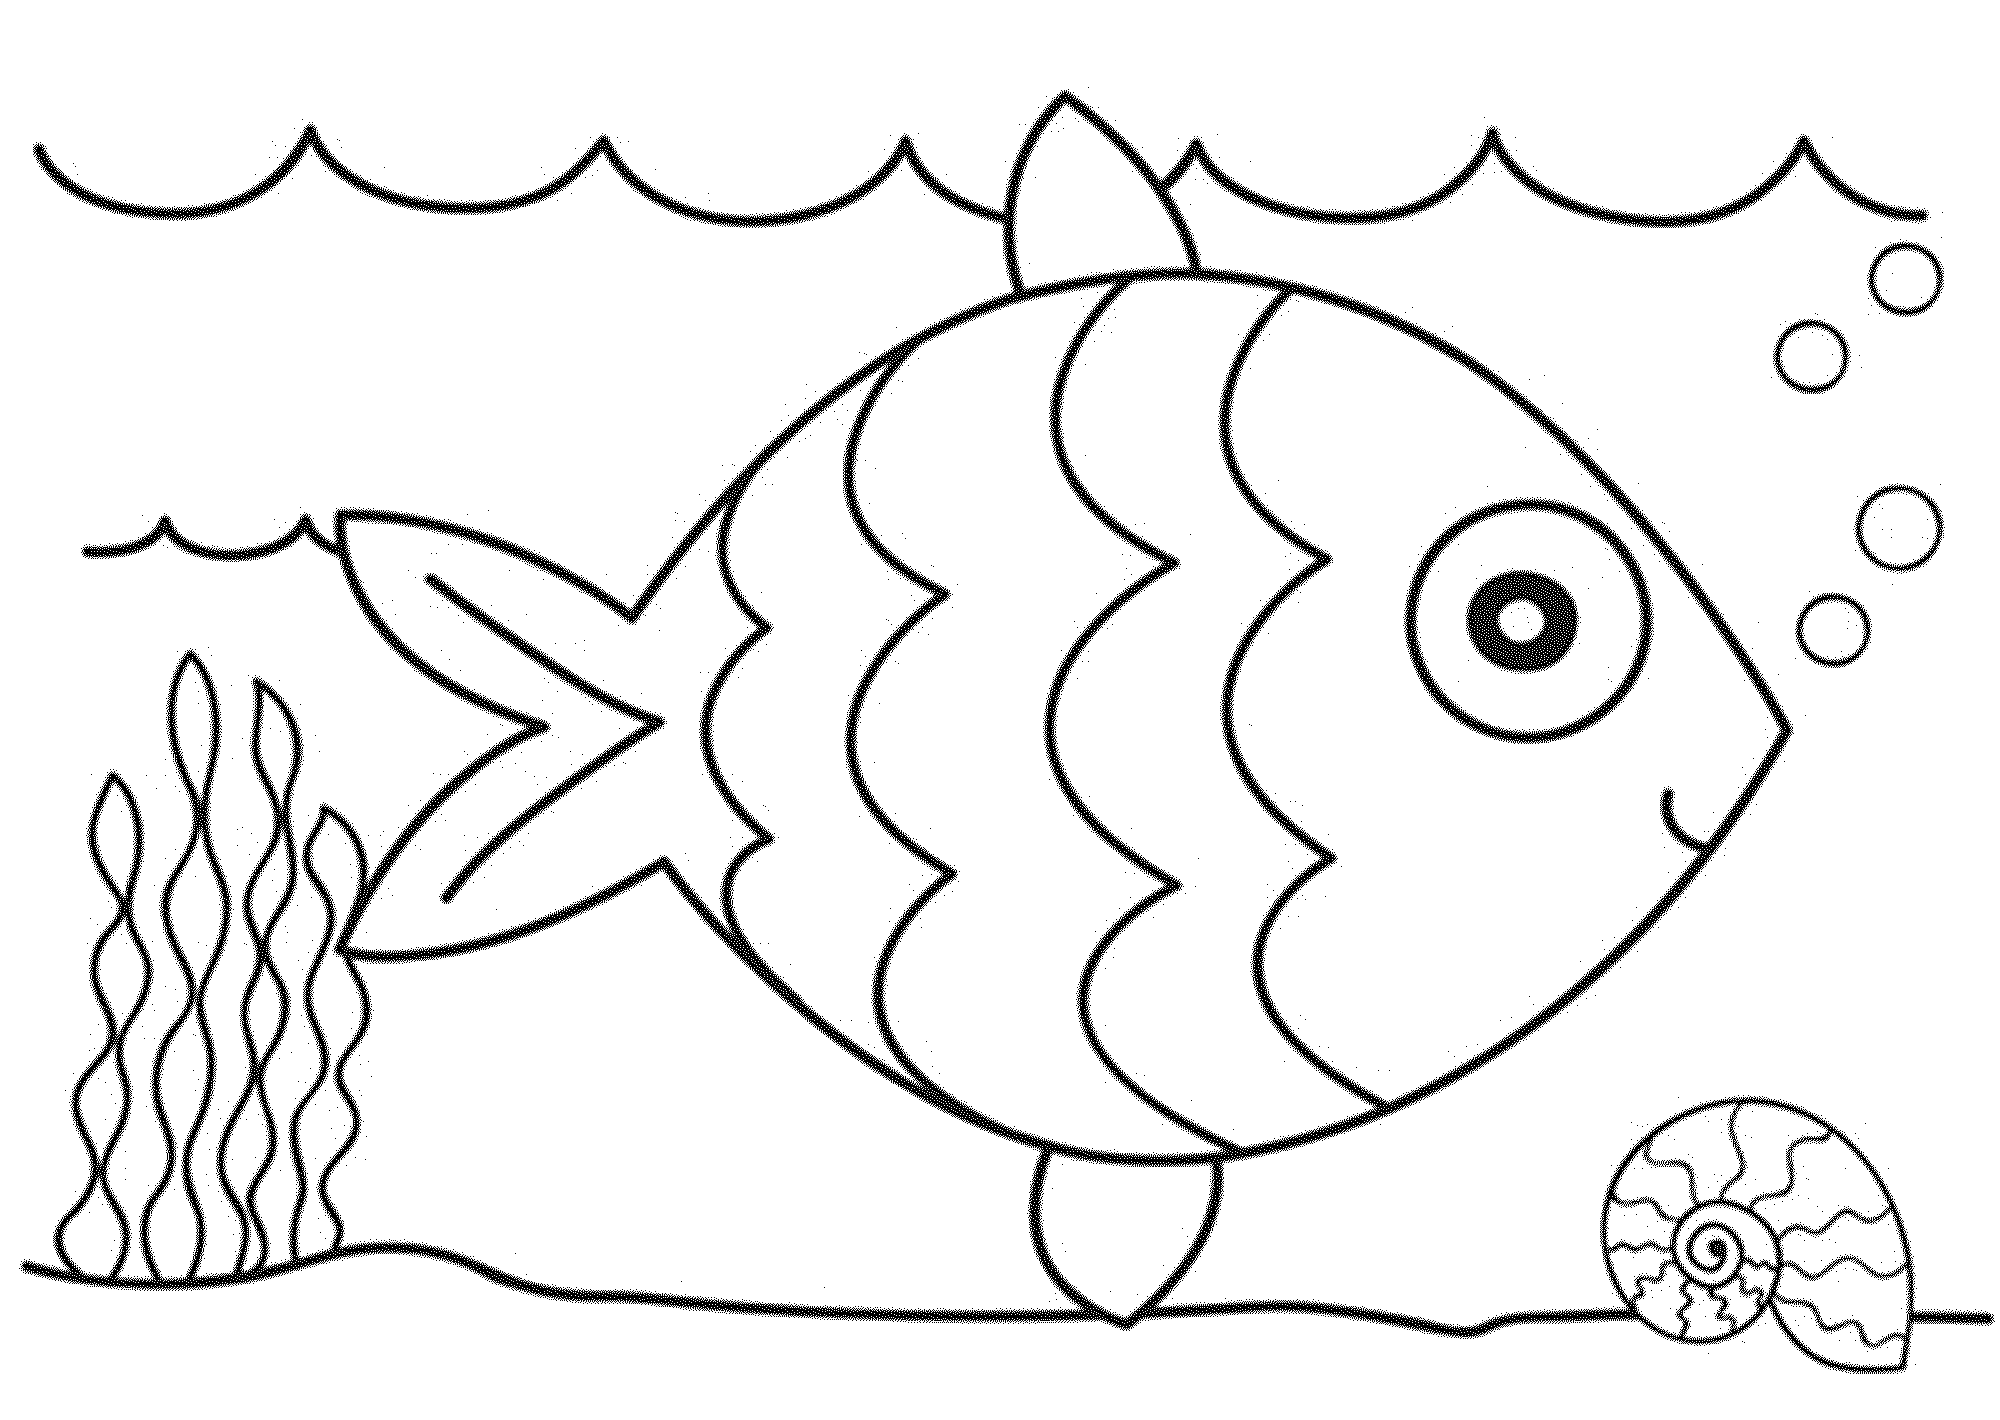 fish colouring images easy coloring pages easy coloring pages fish coloring fish images colouring